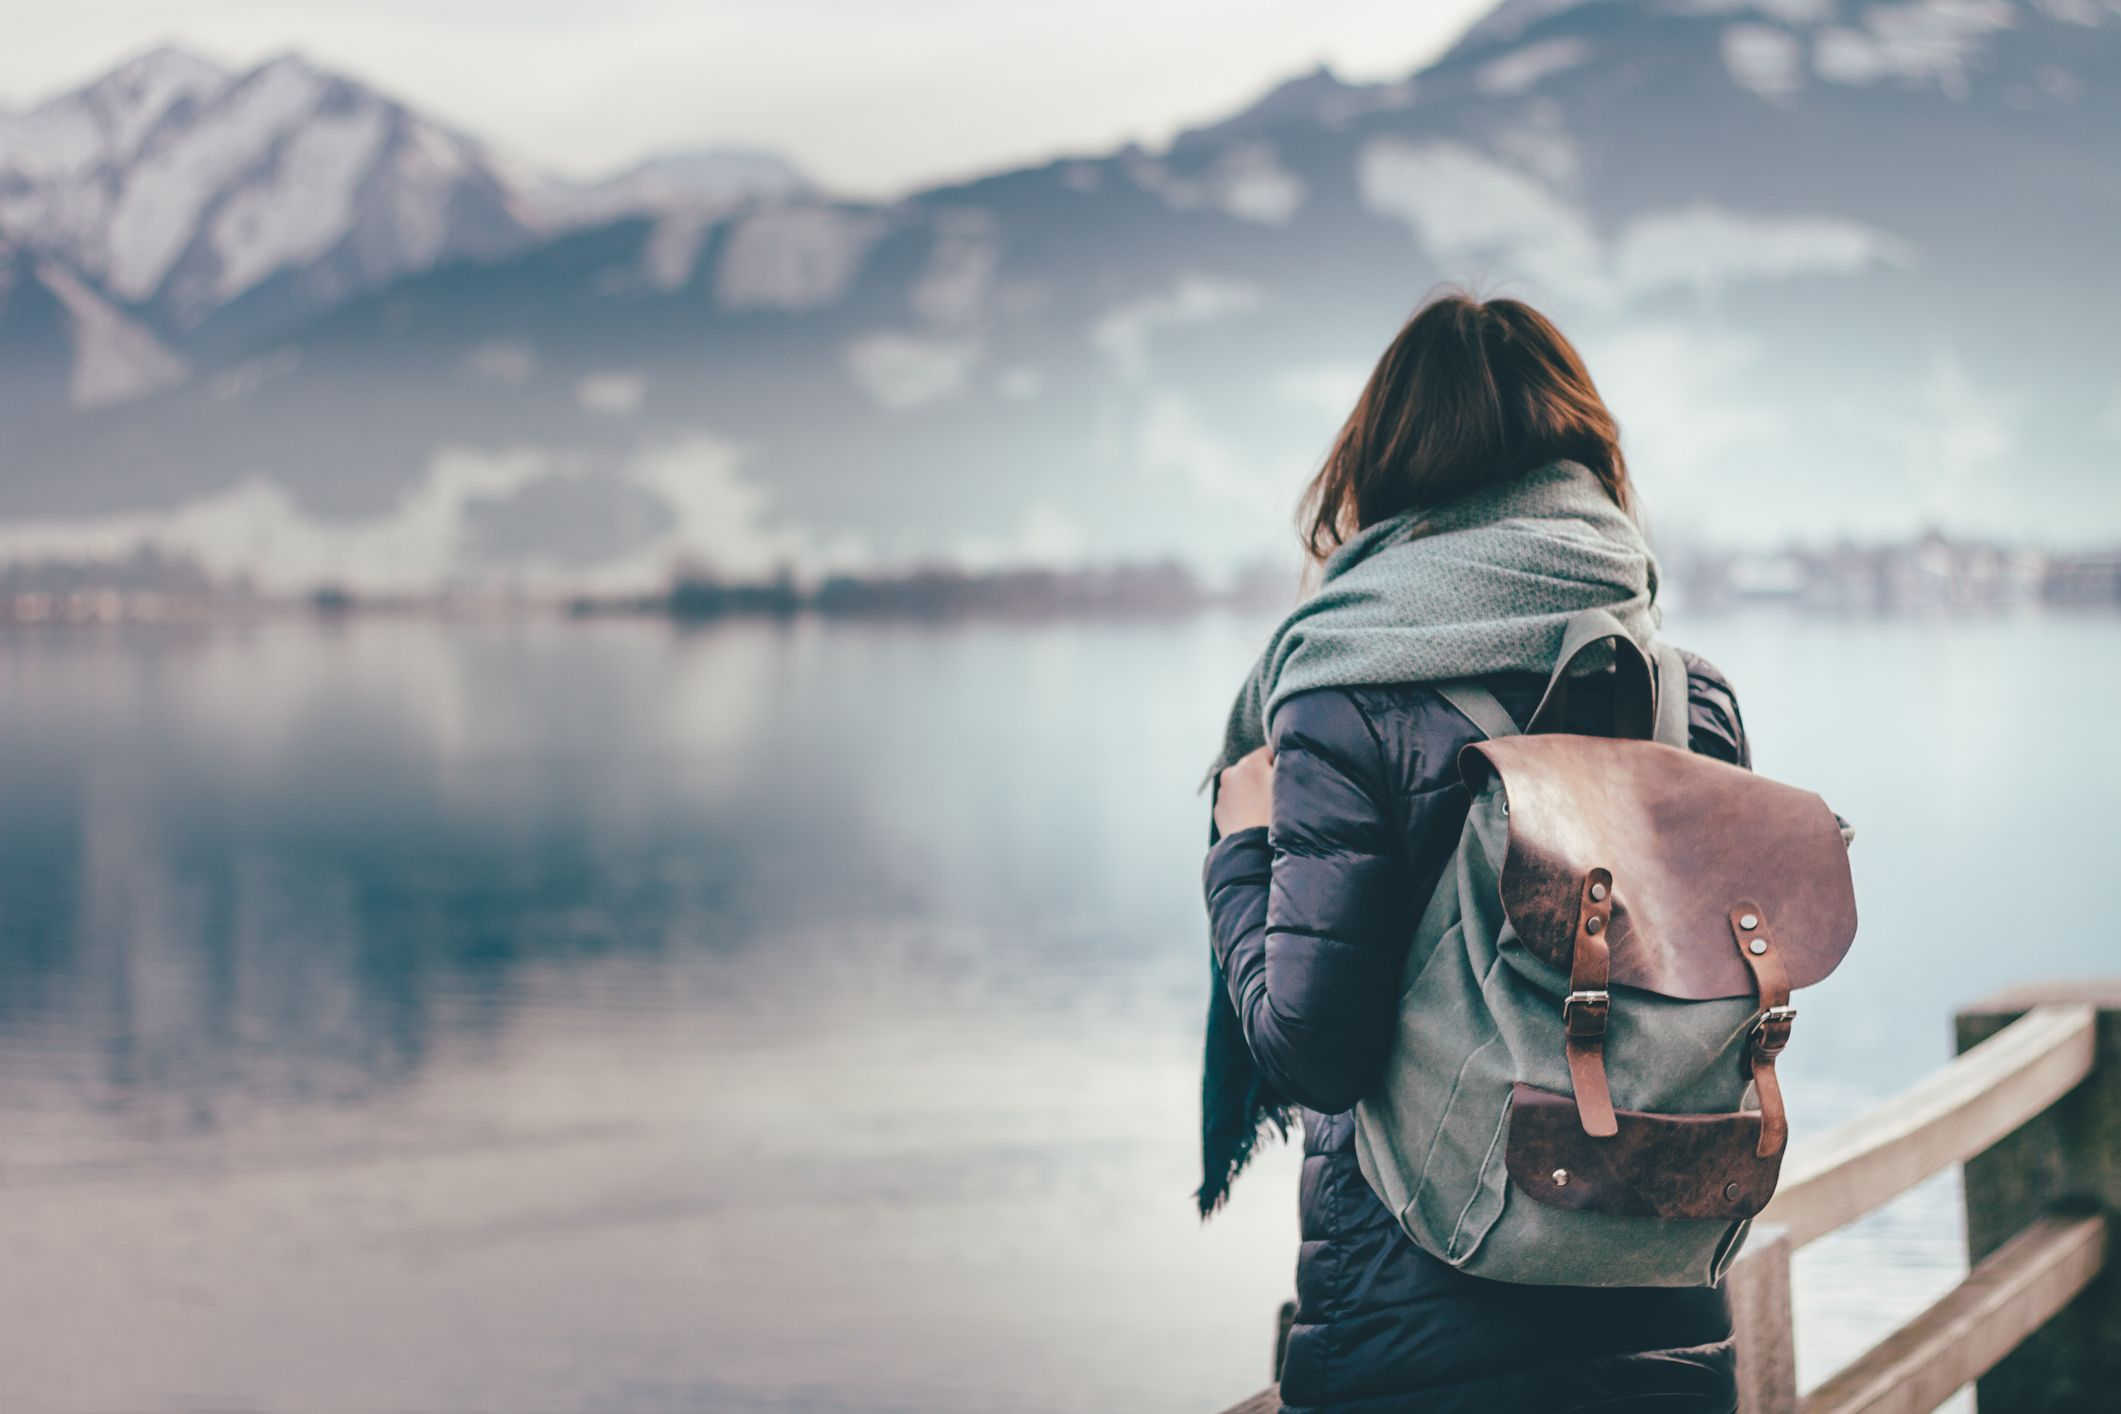 How to Travel: Go to the end of the road